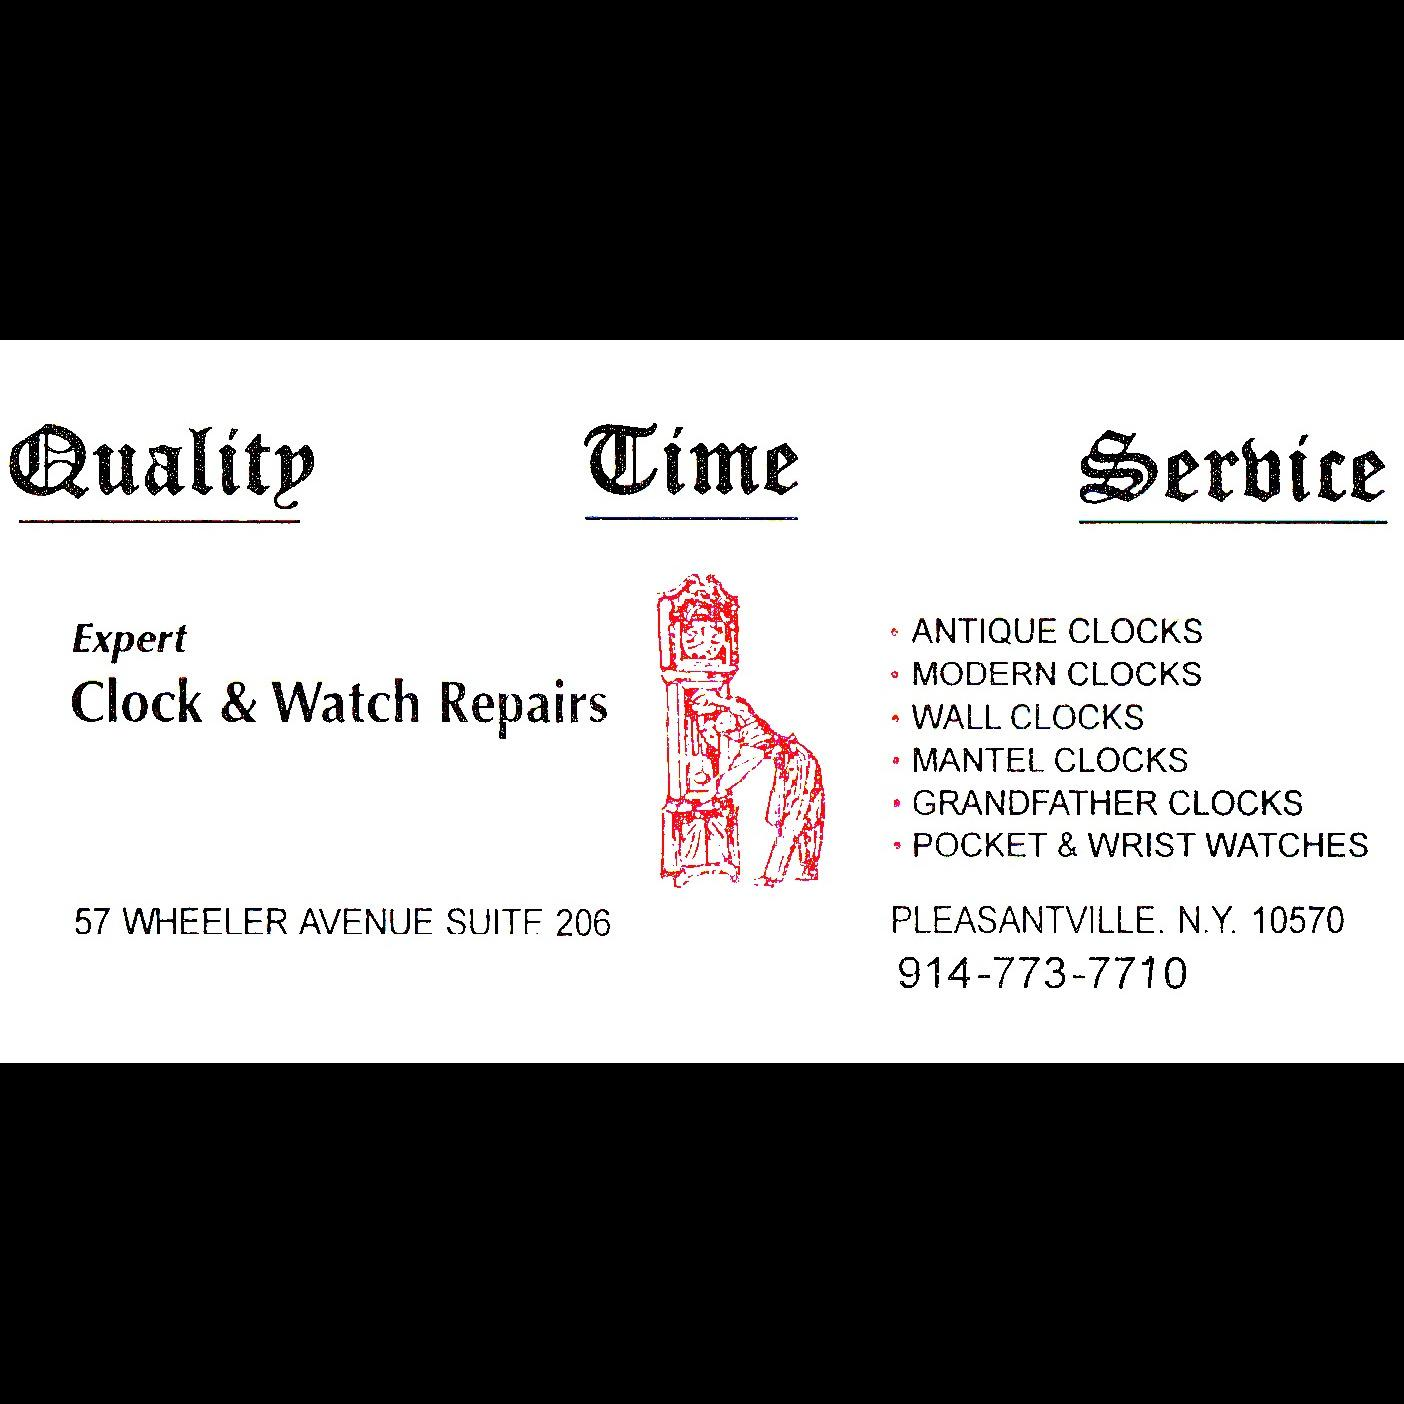 Quality Time Service image 0